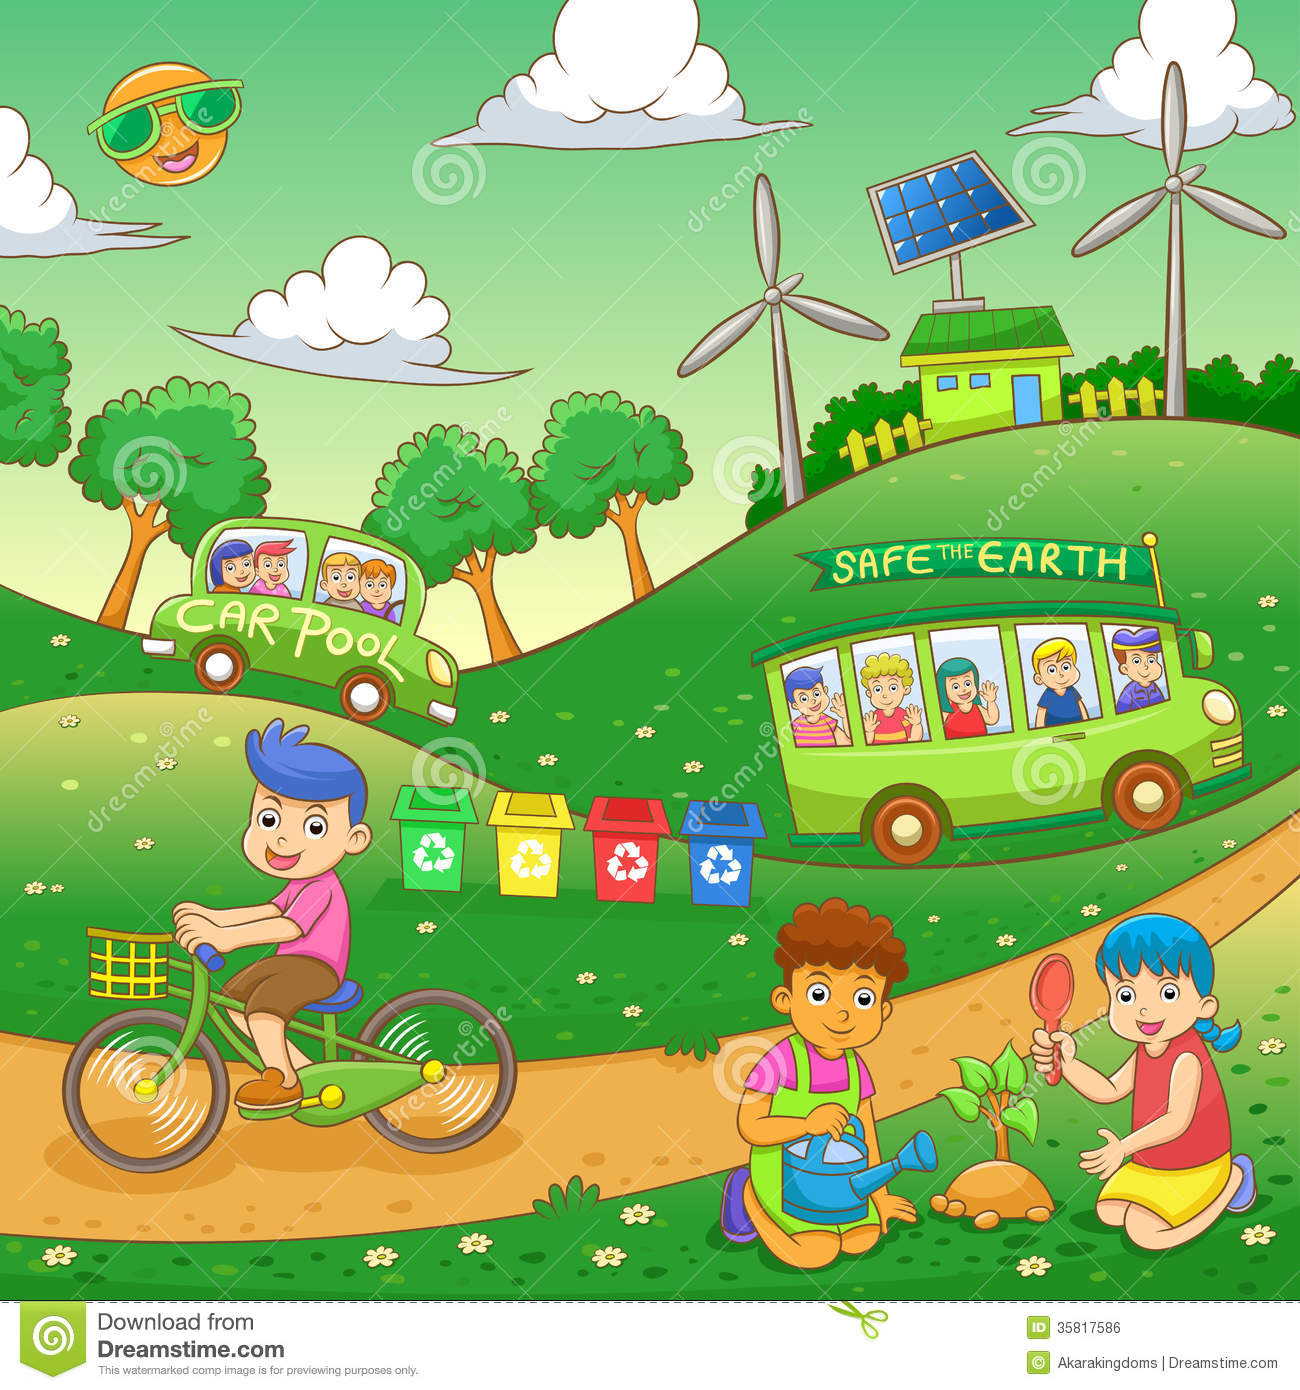 Children Save Our Green World Stock Vector Illustration Of Cartoon